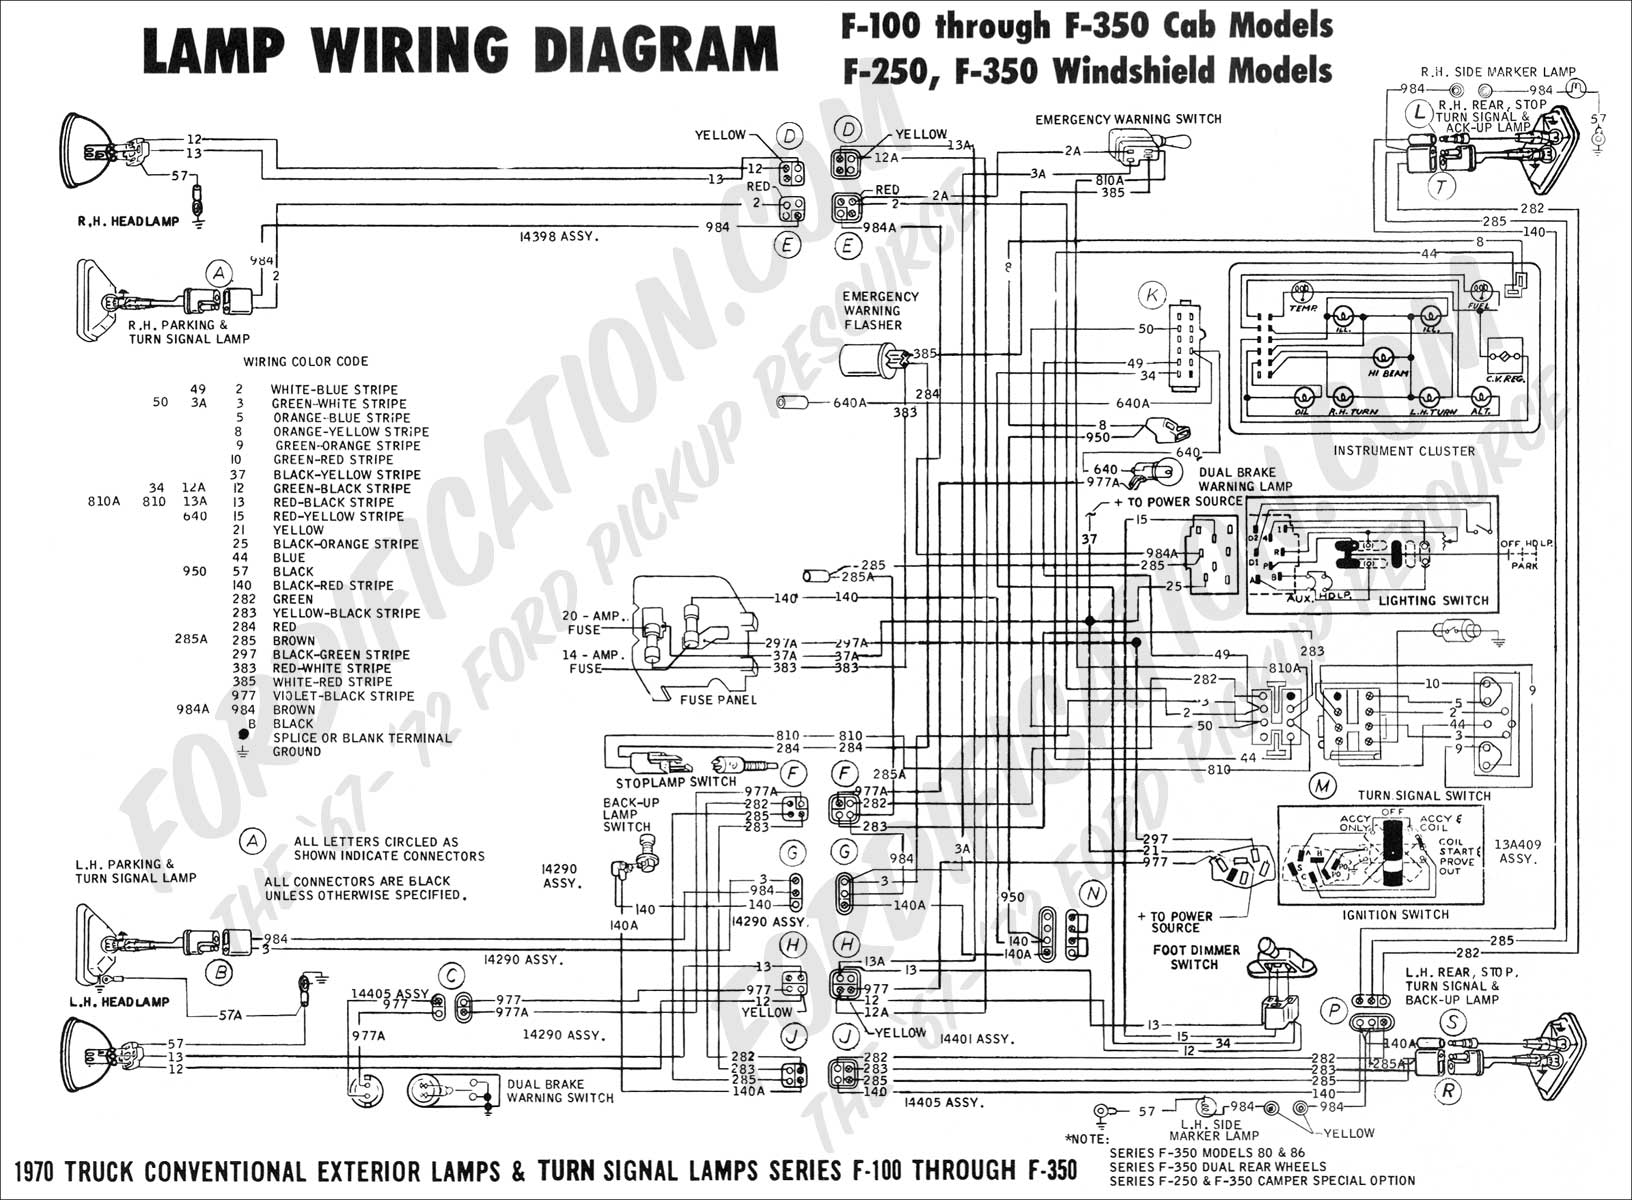 1990 ford truck wiring diagram online schematics diagram rh delvato co Ford  Cruise Control Wiring Diagram Ford Cruise Control Wiring Diagram